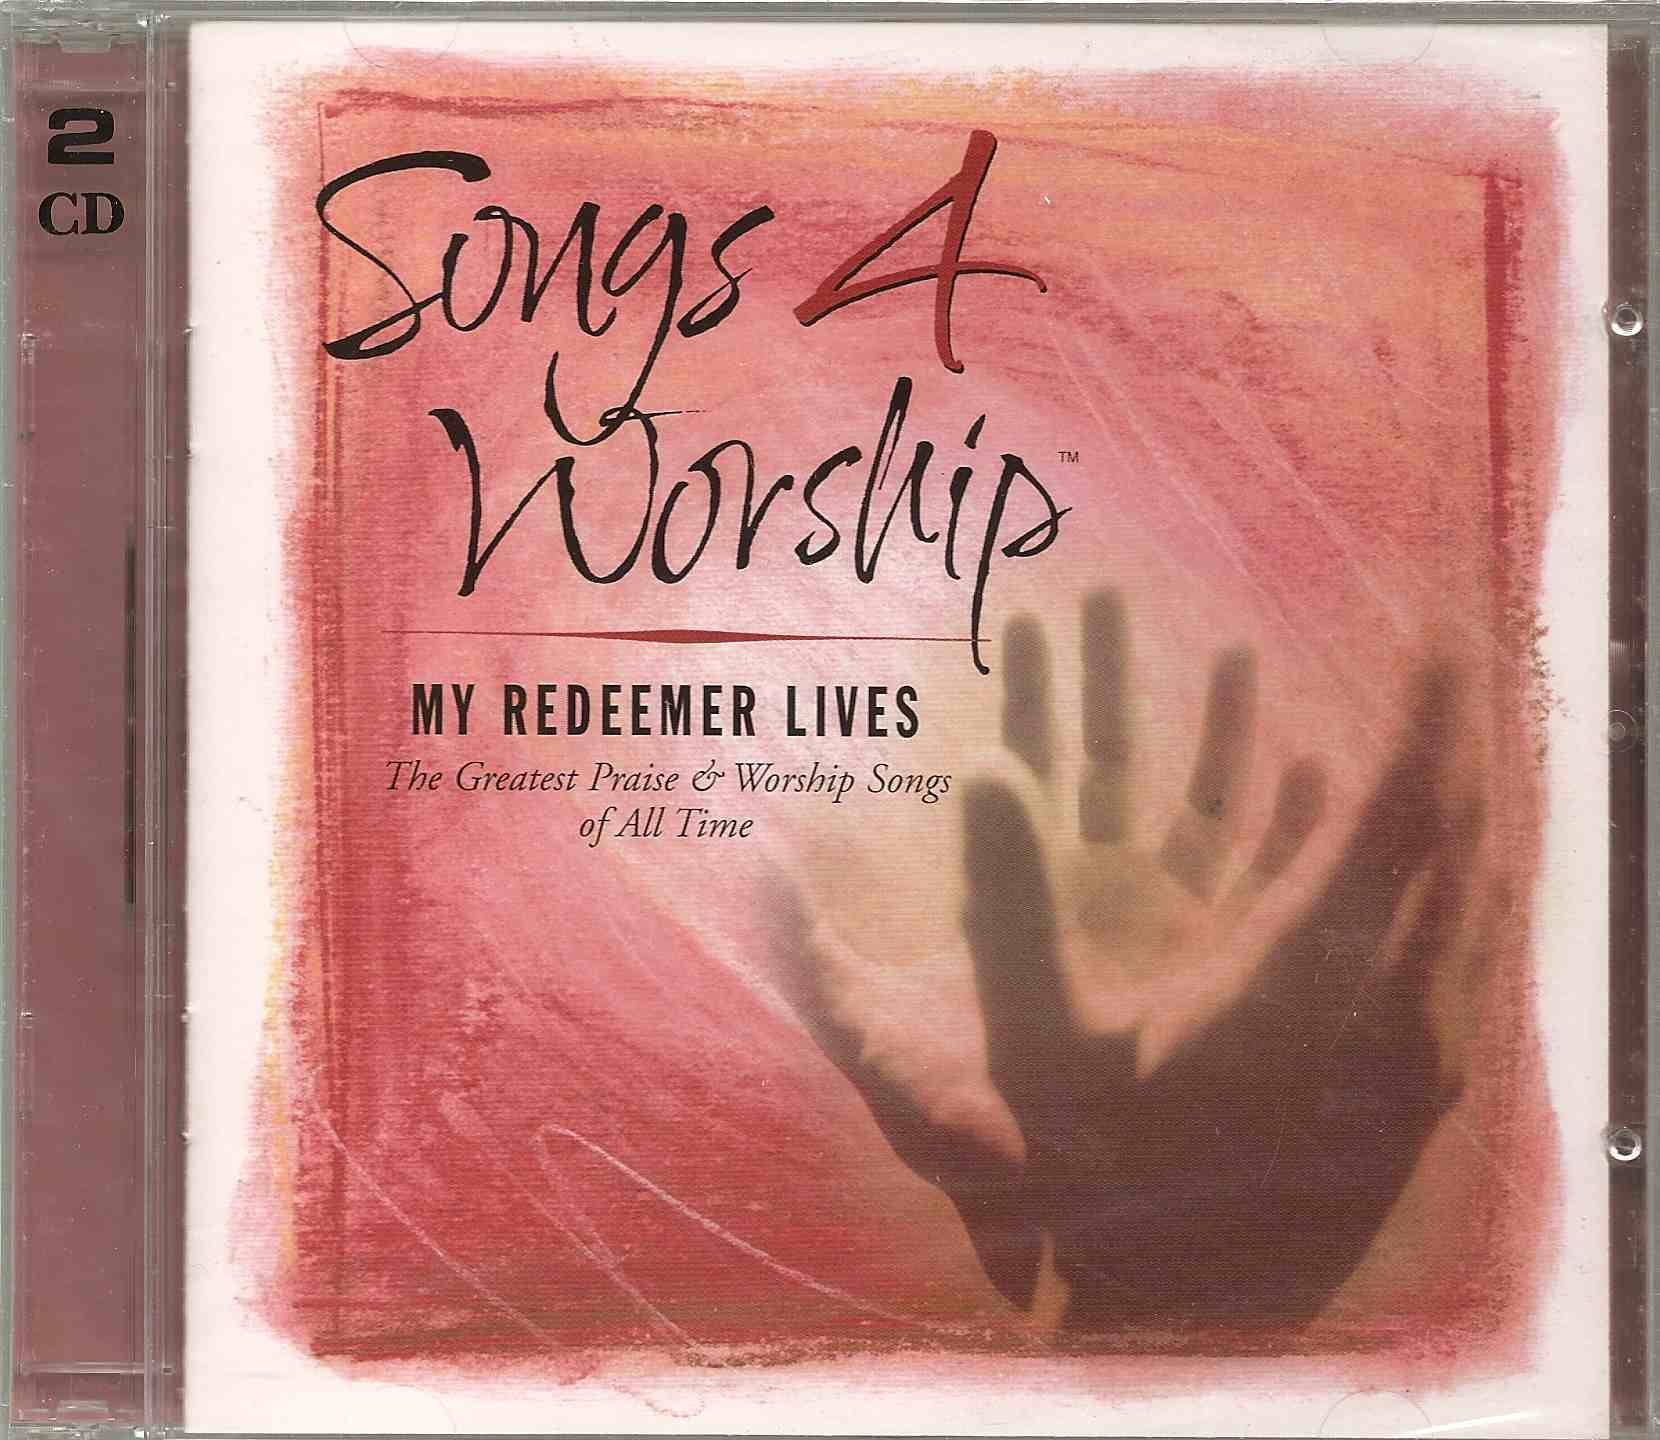 Songs 4 Worship My Redeemer Lives